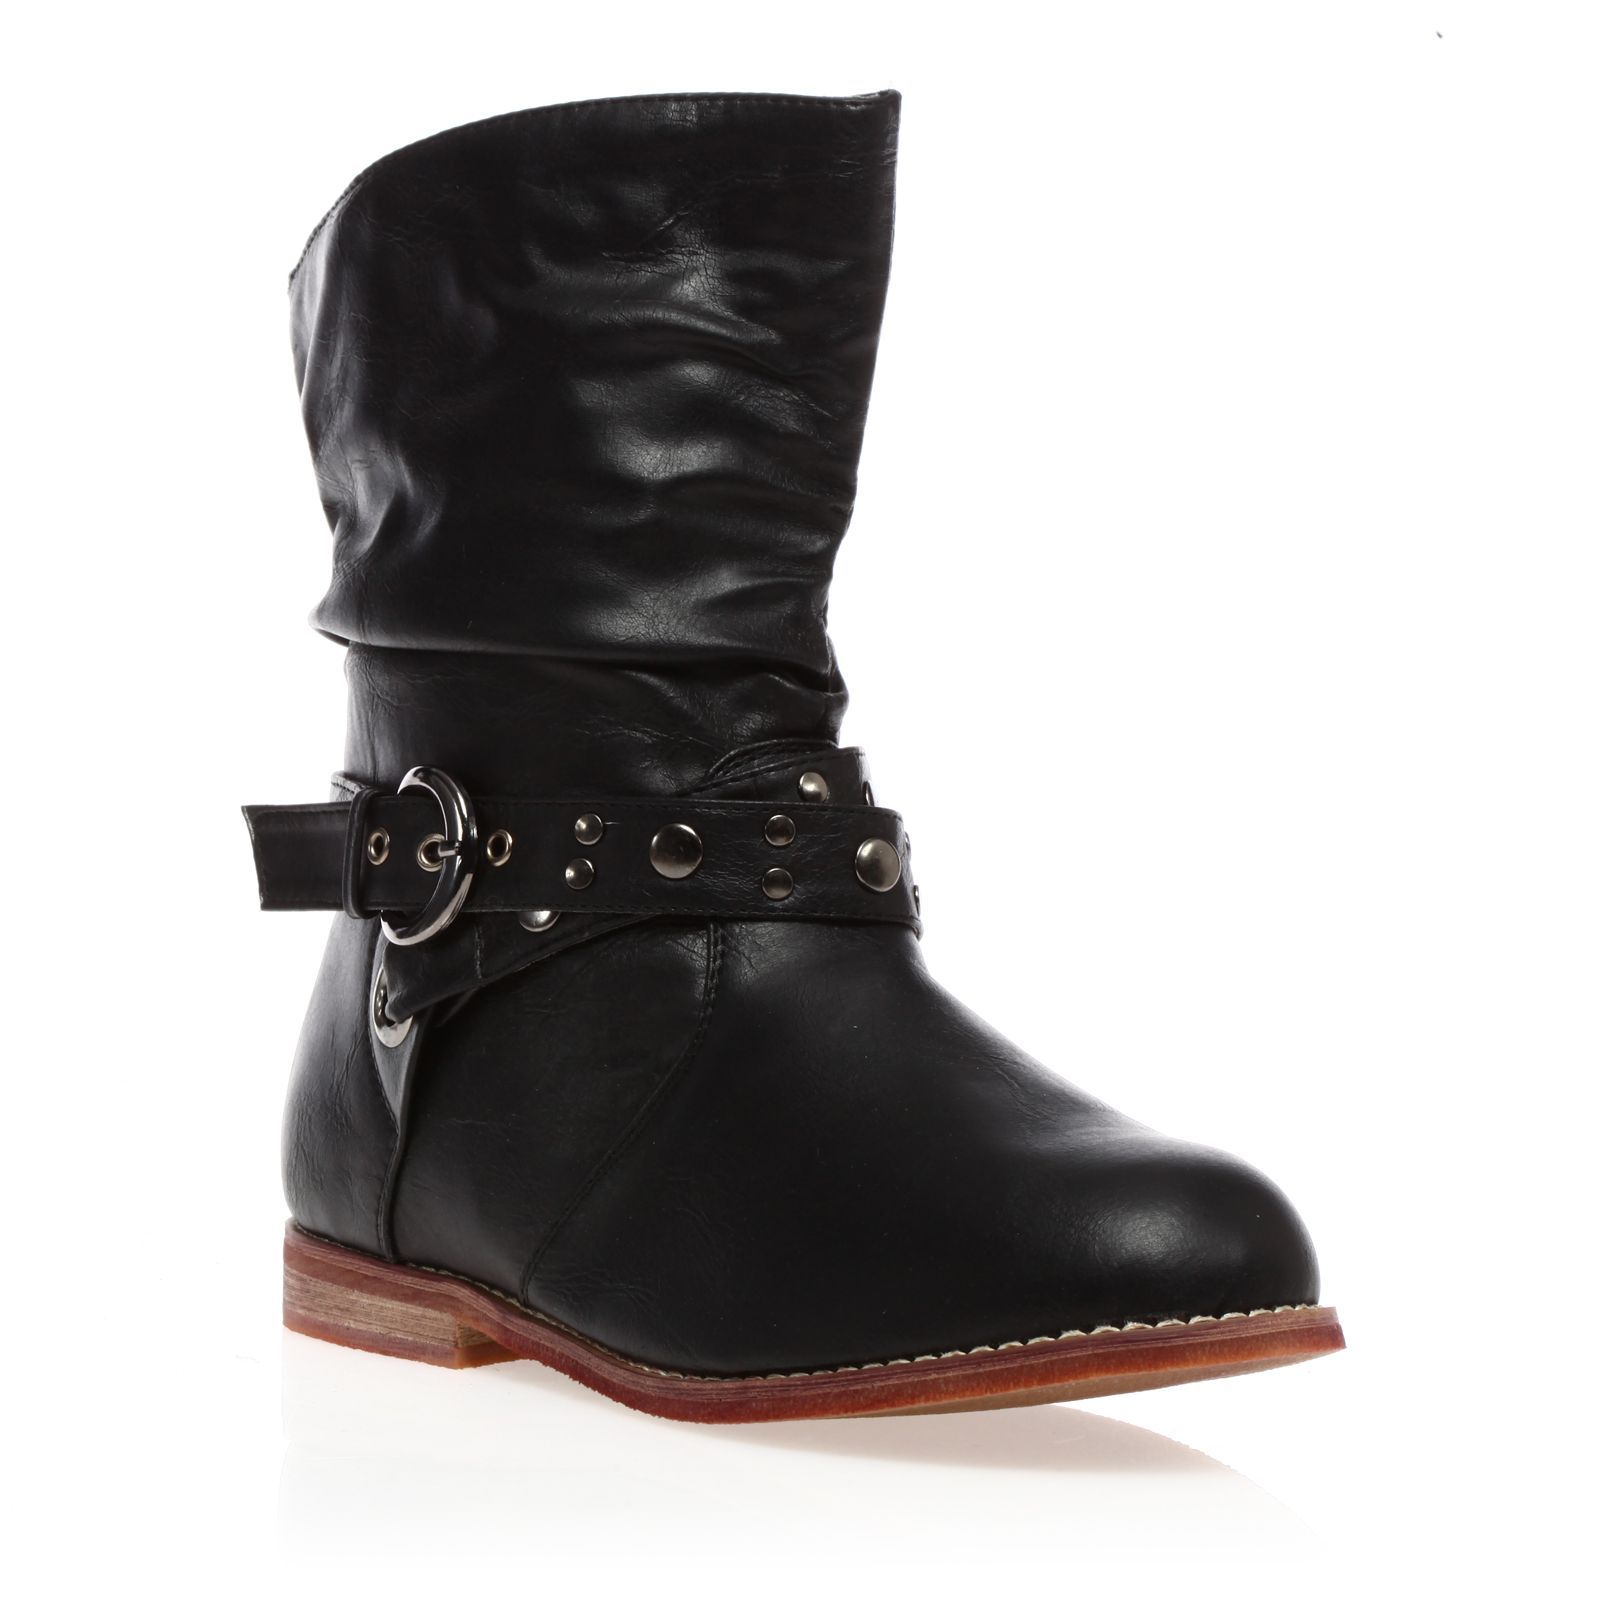 1001 Shoes bottines noires